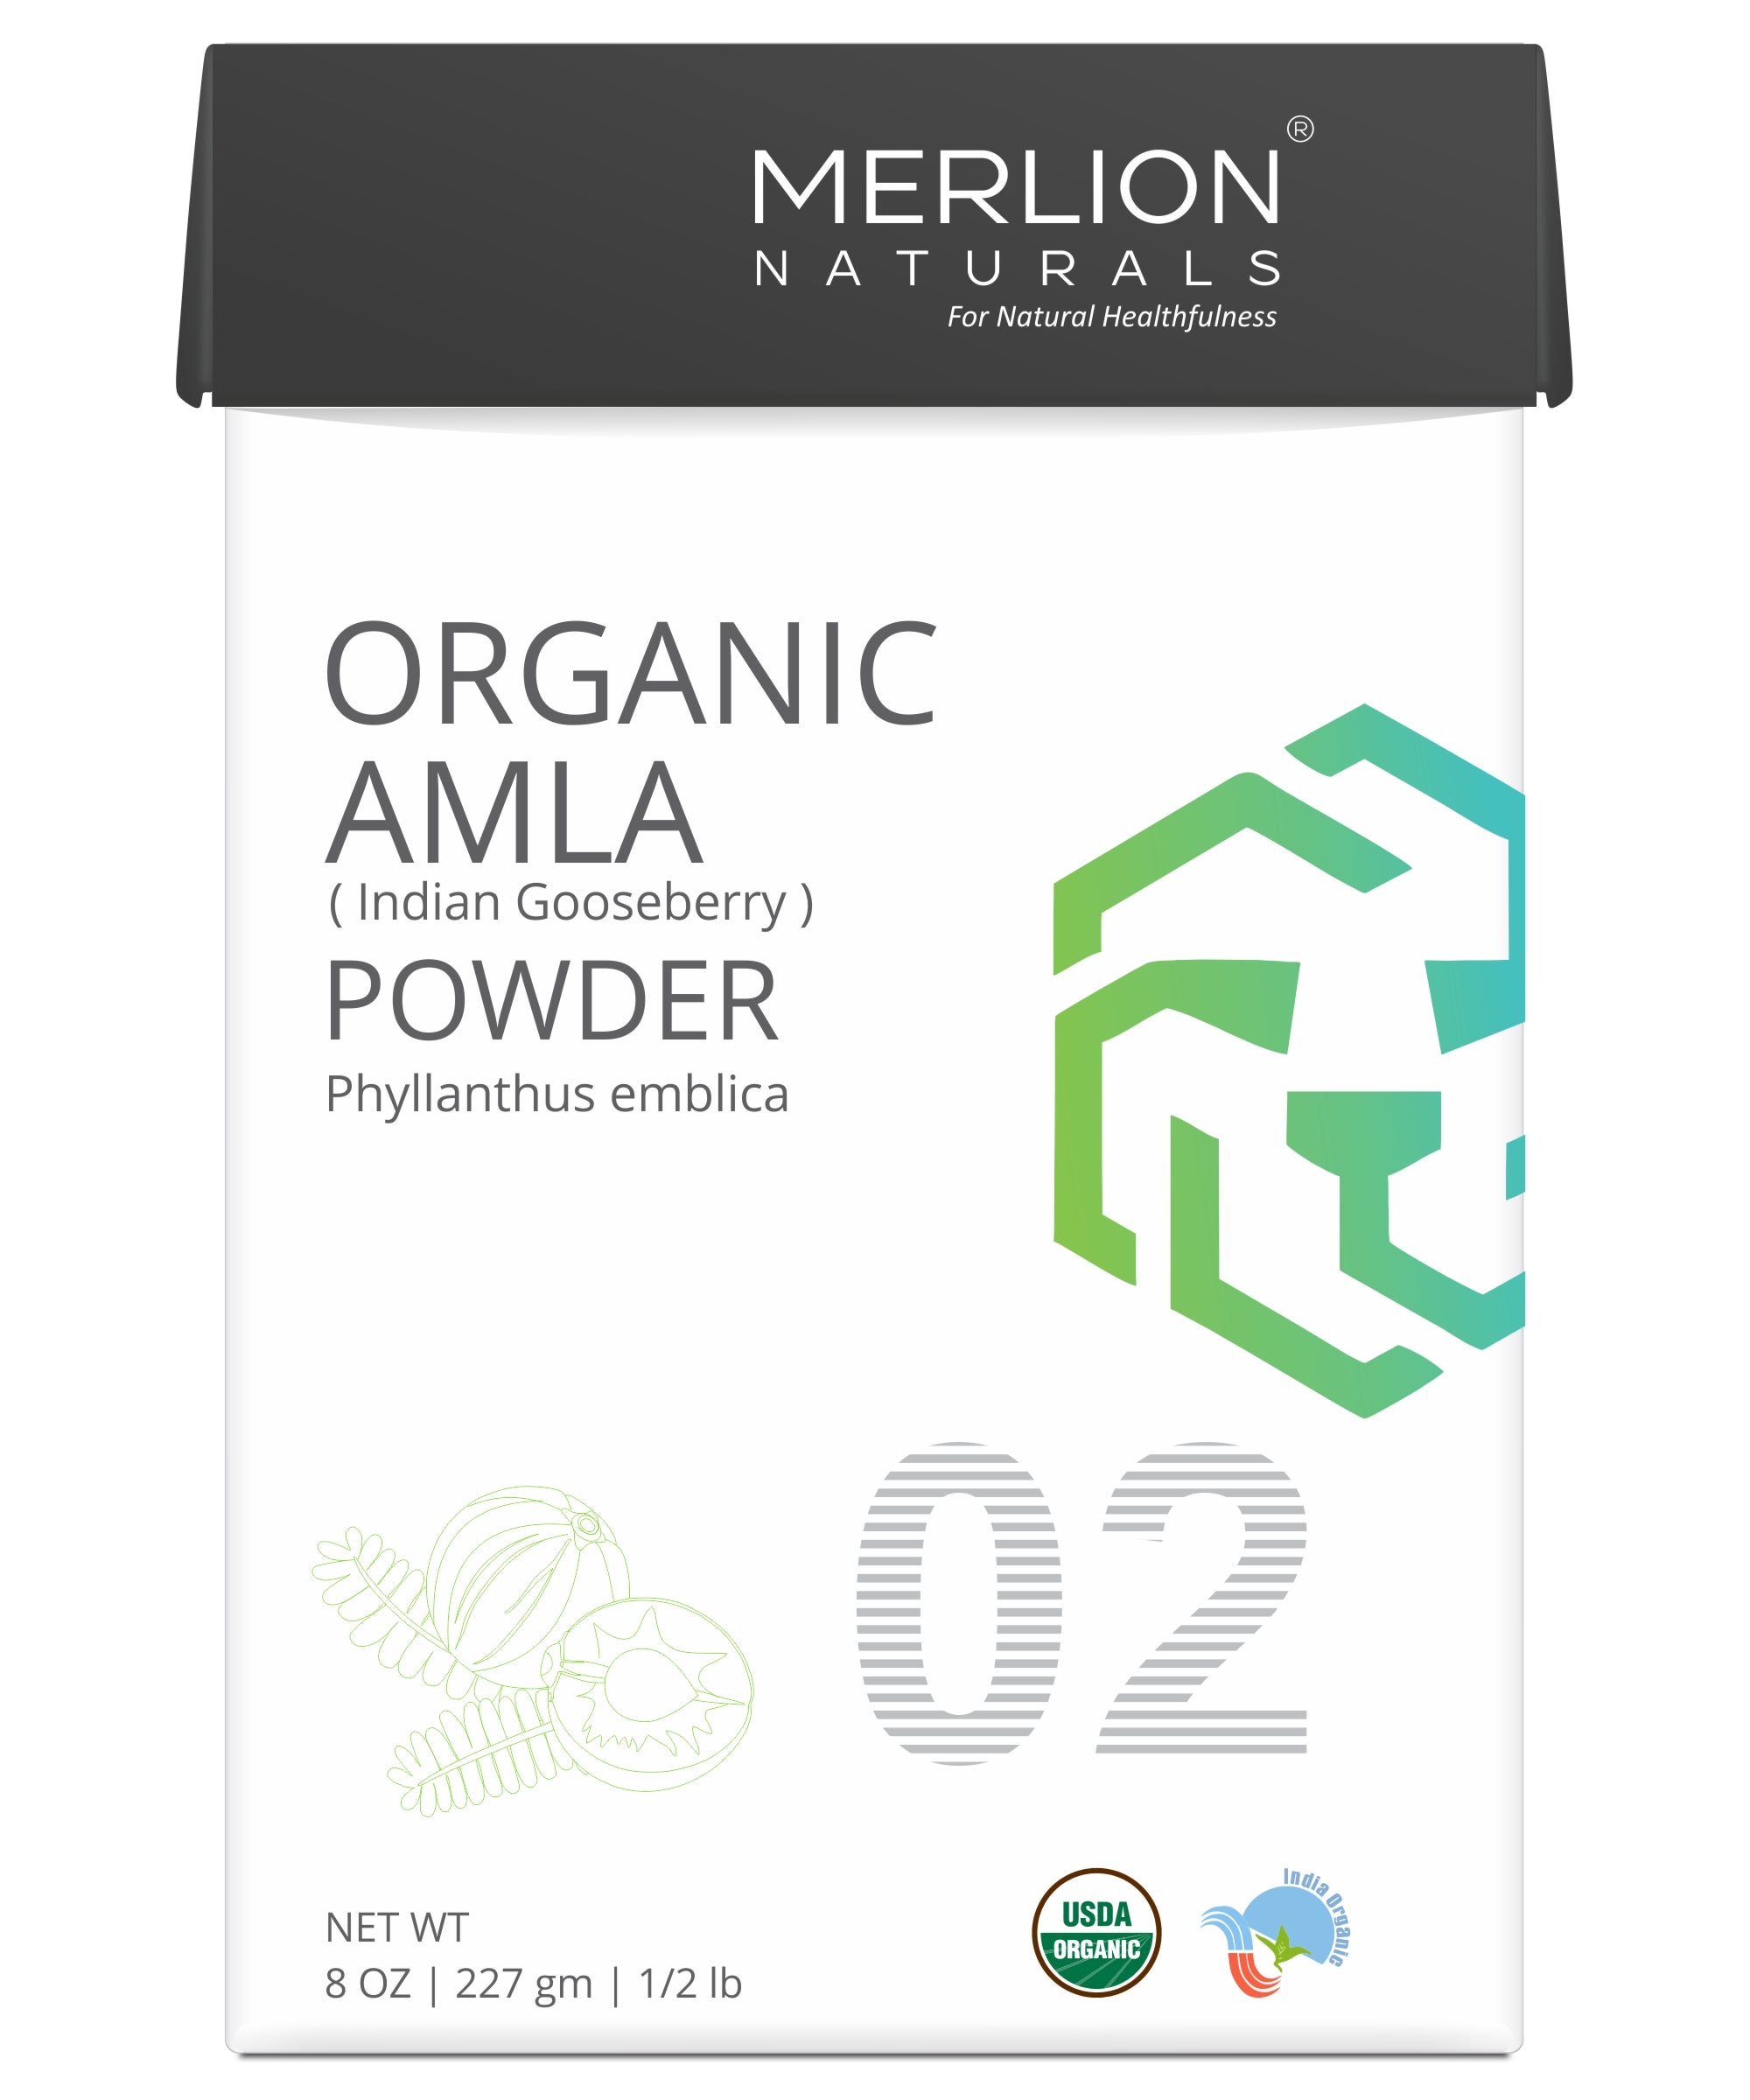 Organic Amla Powder | Philanthus emblica | Indian Gooseberry